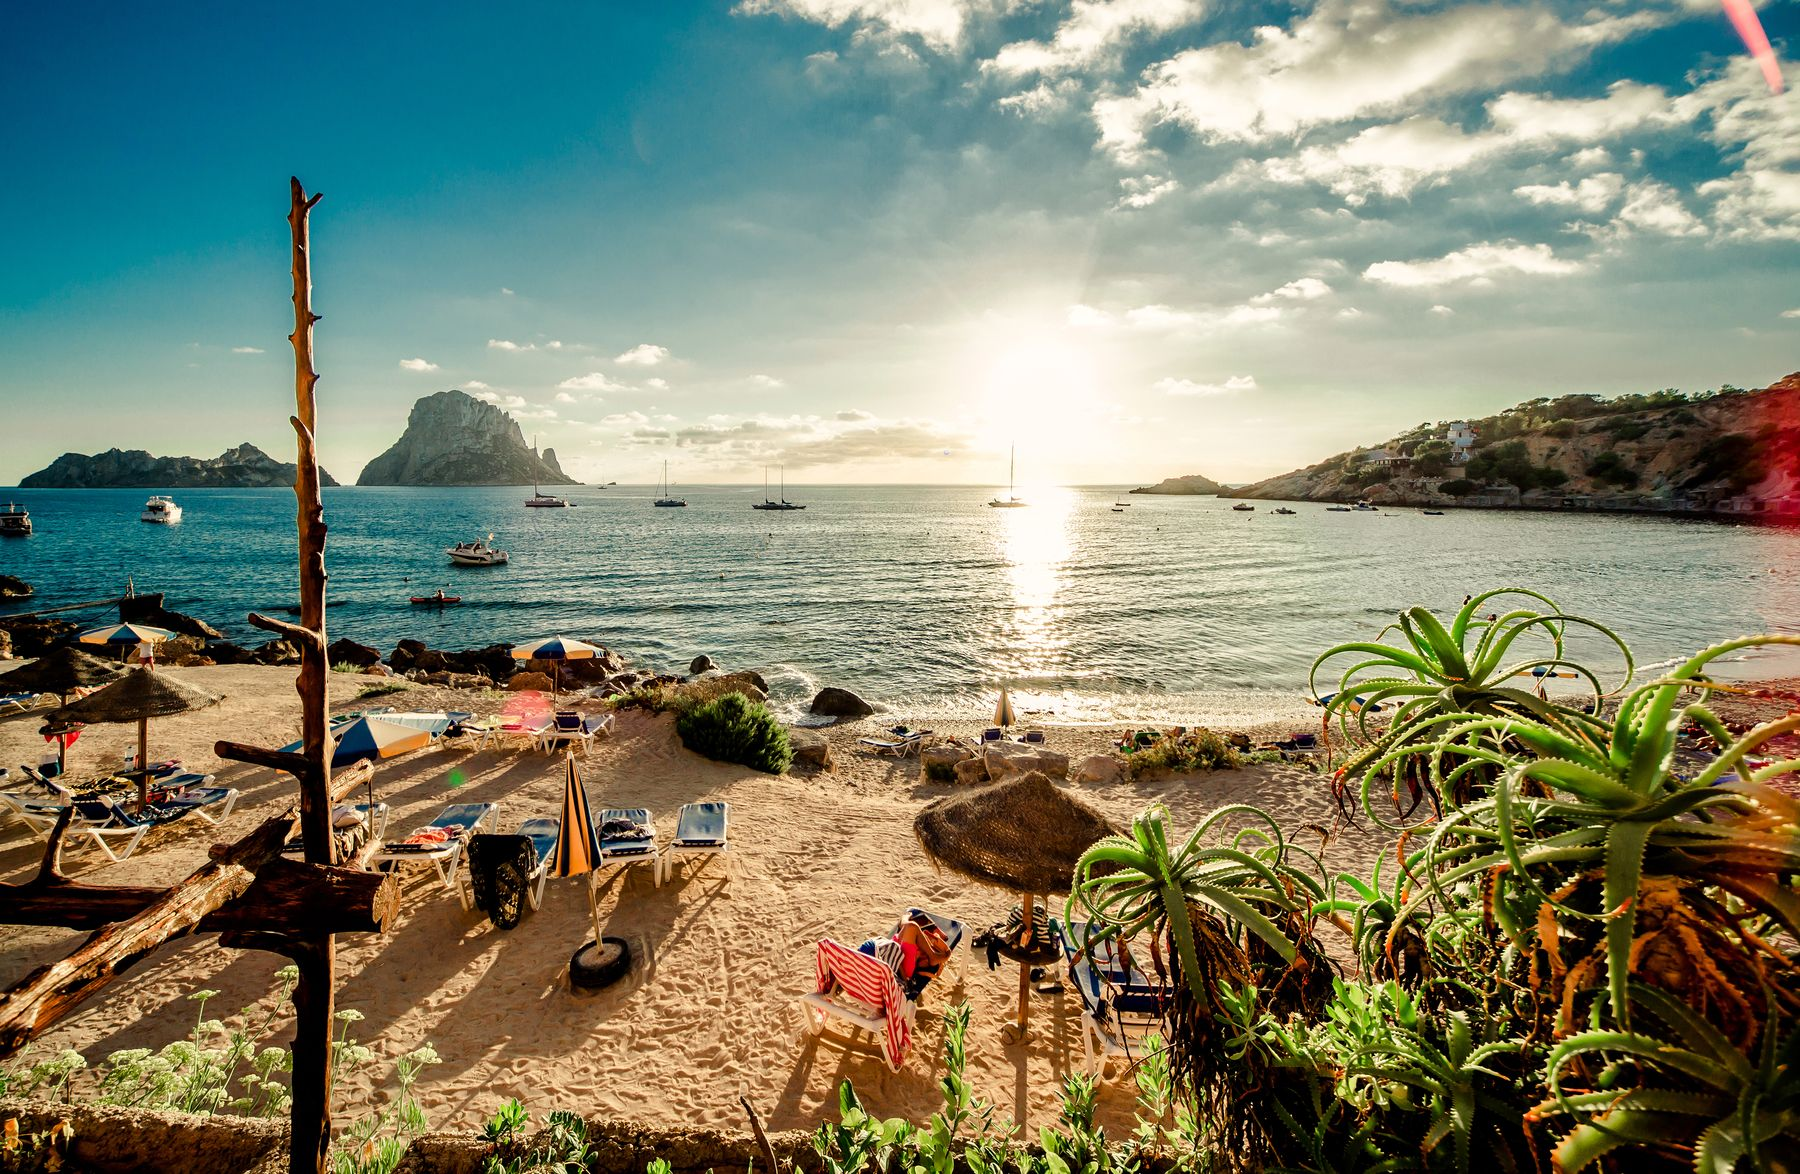 Despite its reputation, it's possible to have a cheap beach holiday in Ibiza